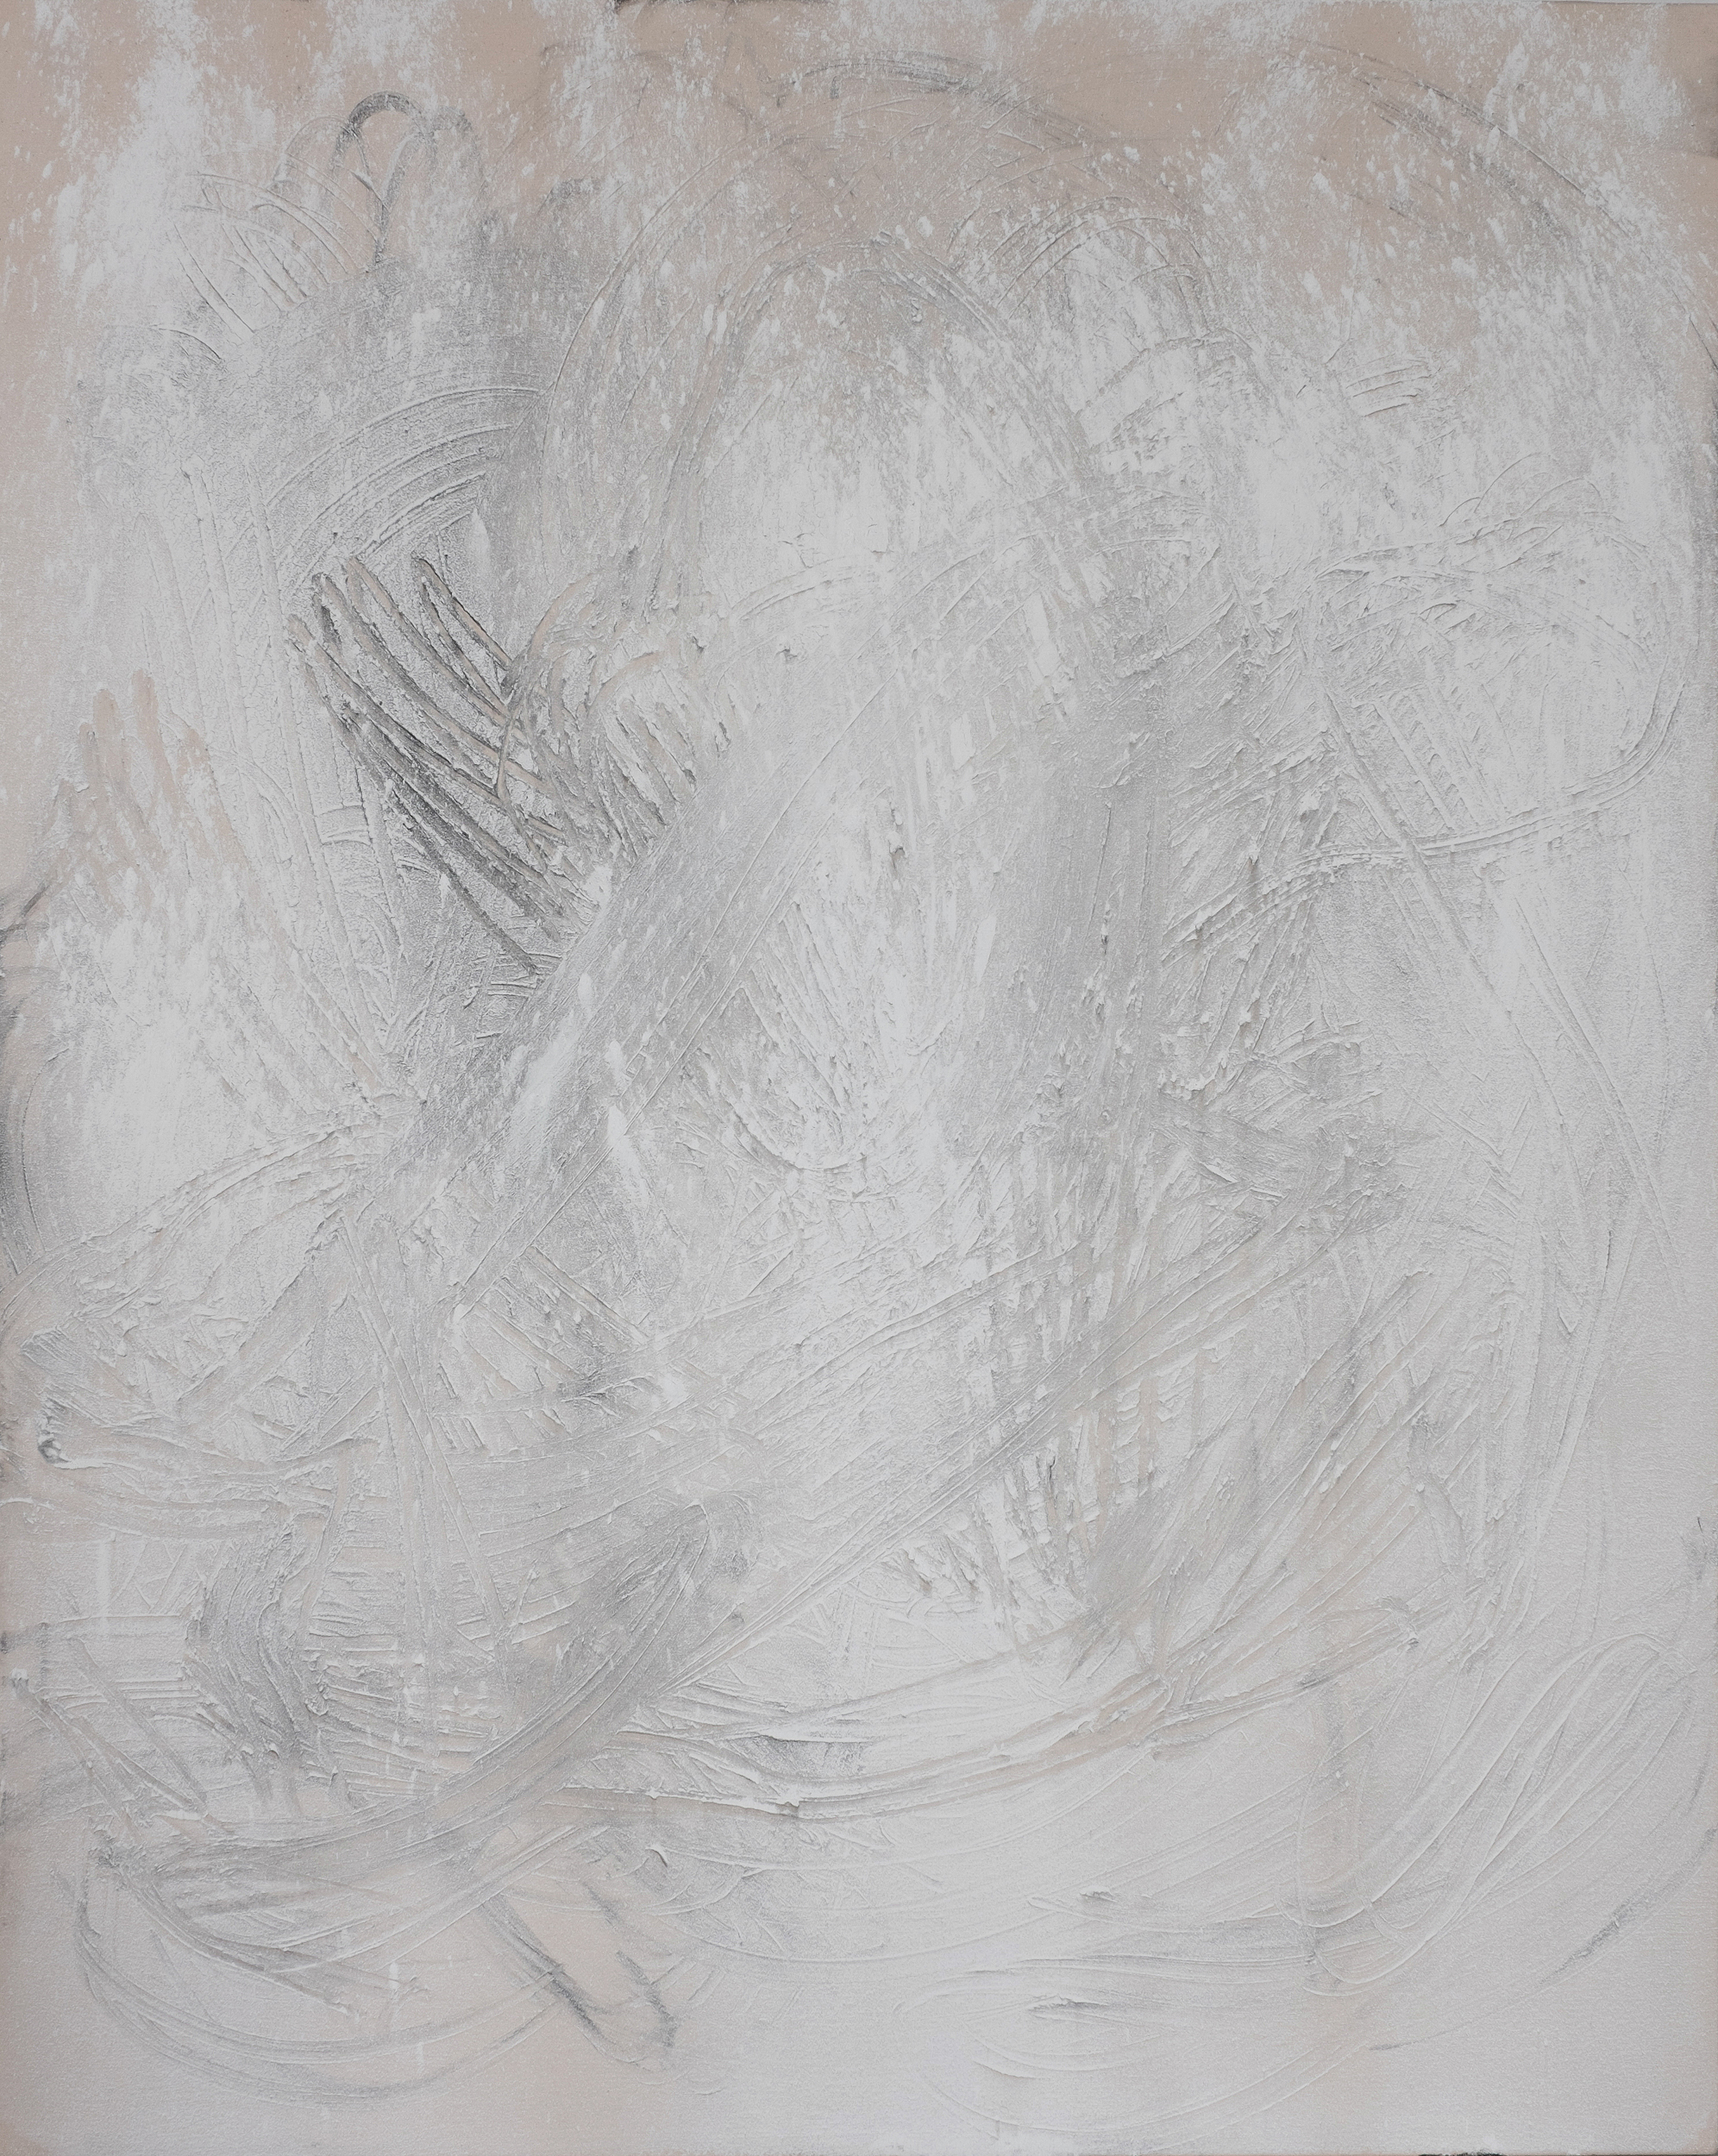 Whiteout, Acrylic, and Raw Pigments on Canvas, 5x4 feet, 2015